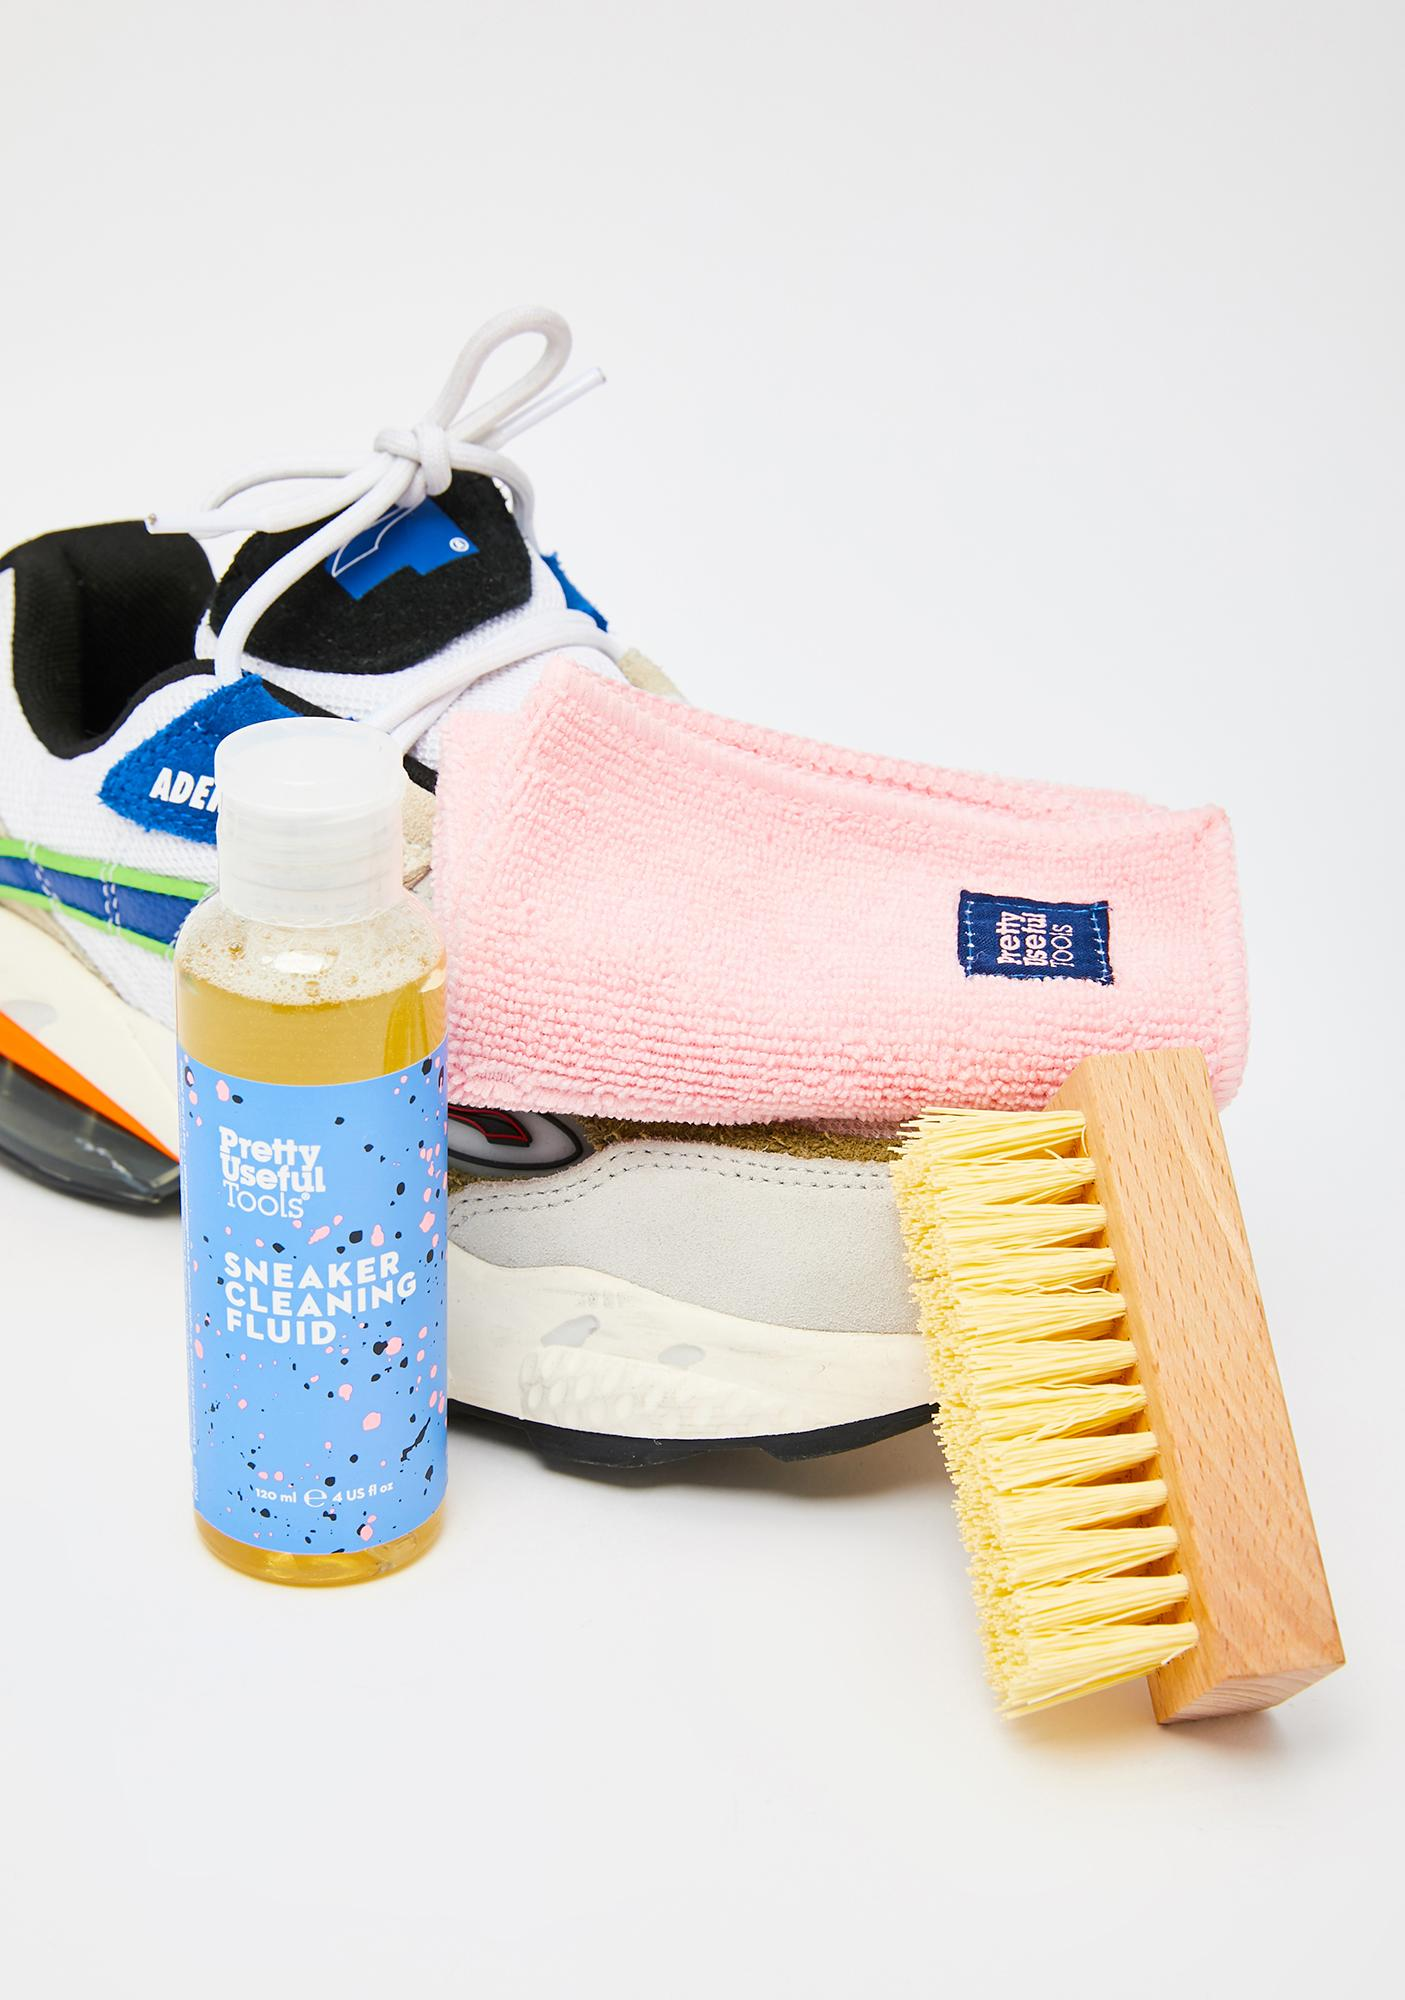 Wild & Wolf Sneaker Cleaning Kit